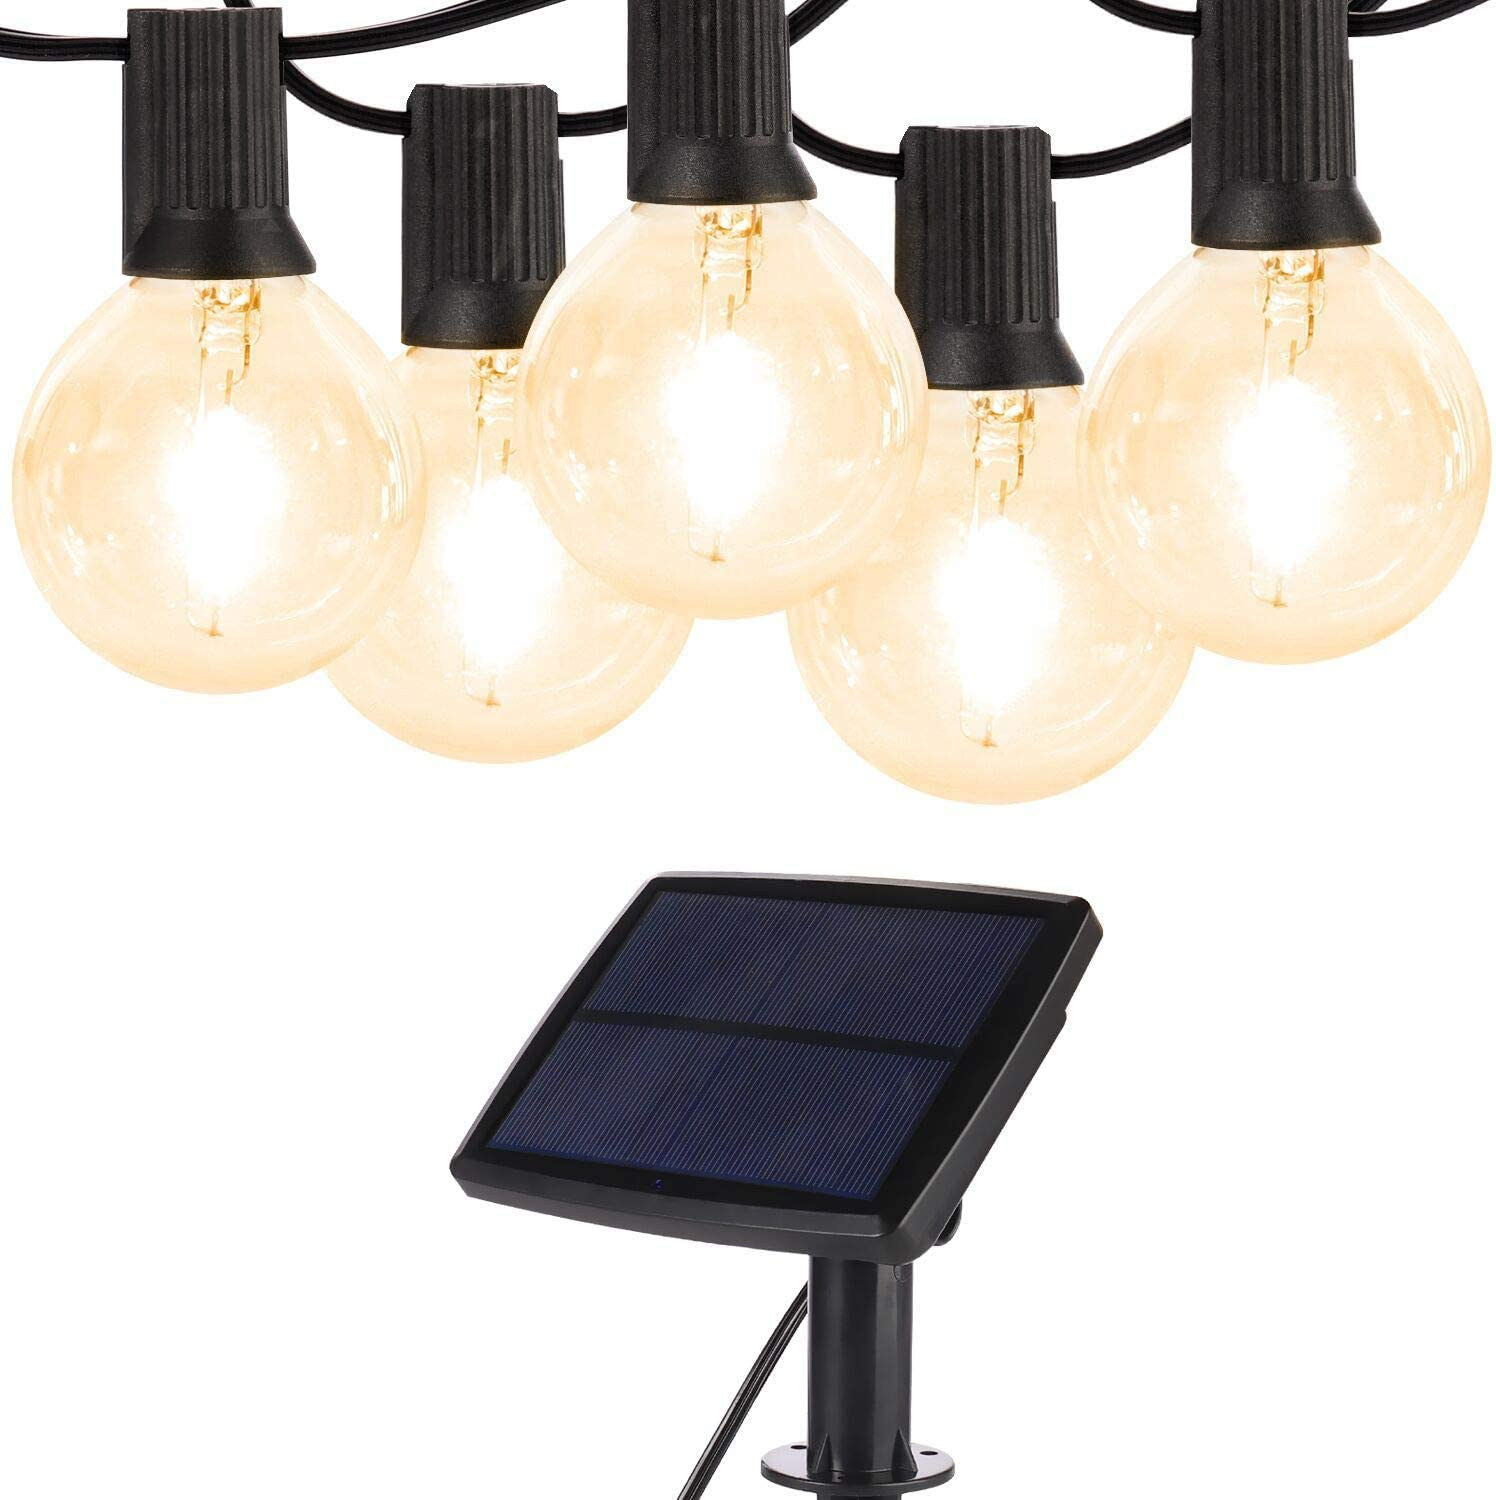 TOPCHANCES 18Ft Solar 訳あり品送料無料 Powered String Lights G40 10 Led with Pack 最安値